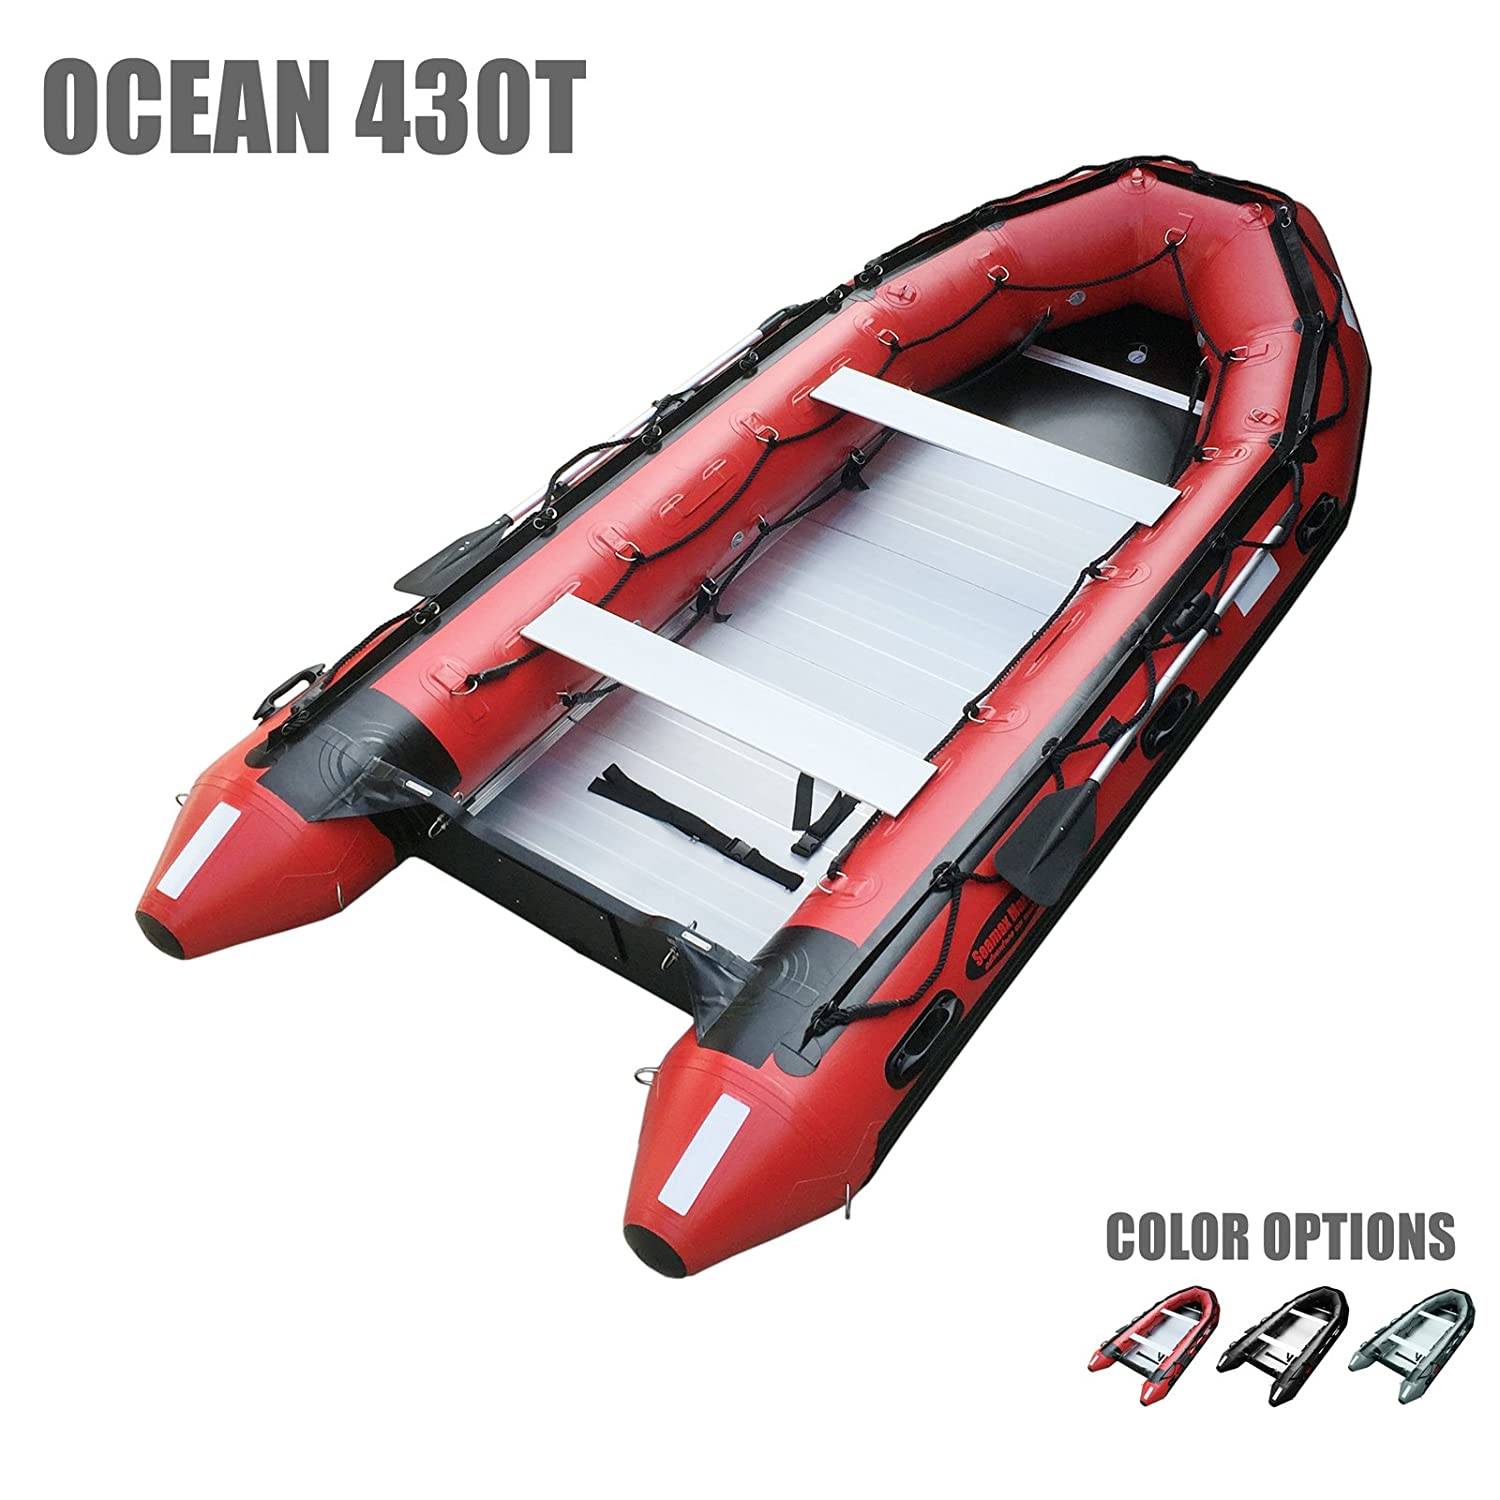 5 Pontoon Chambers x 6.4ft Max Support 35HP Motor Aluminum Floor SEAMAX Ocean430T Commercial Grade Inflatable Boat Multi-Purpose Coast Guard Standard Reflective Tapes 14ft V Bottom